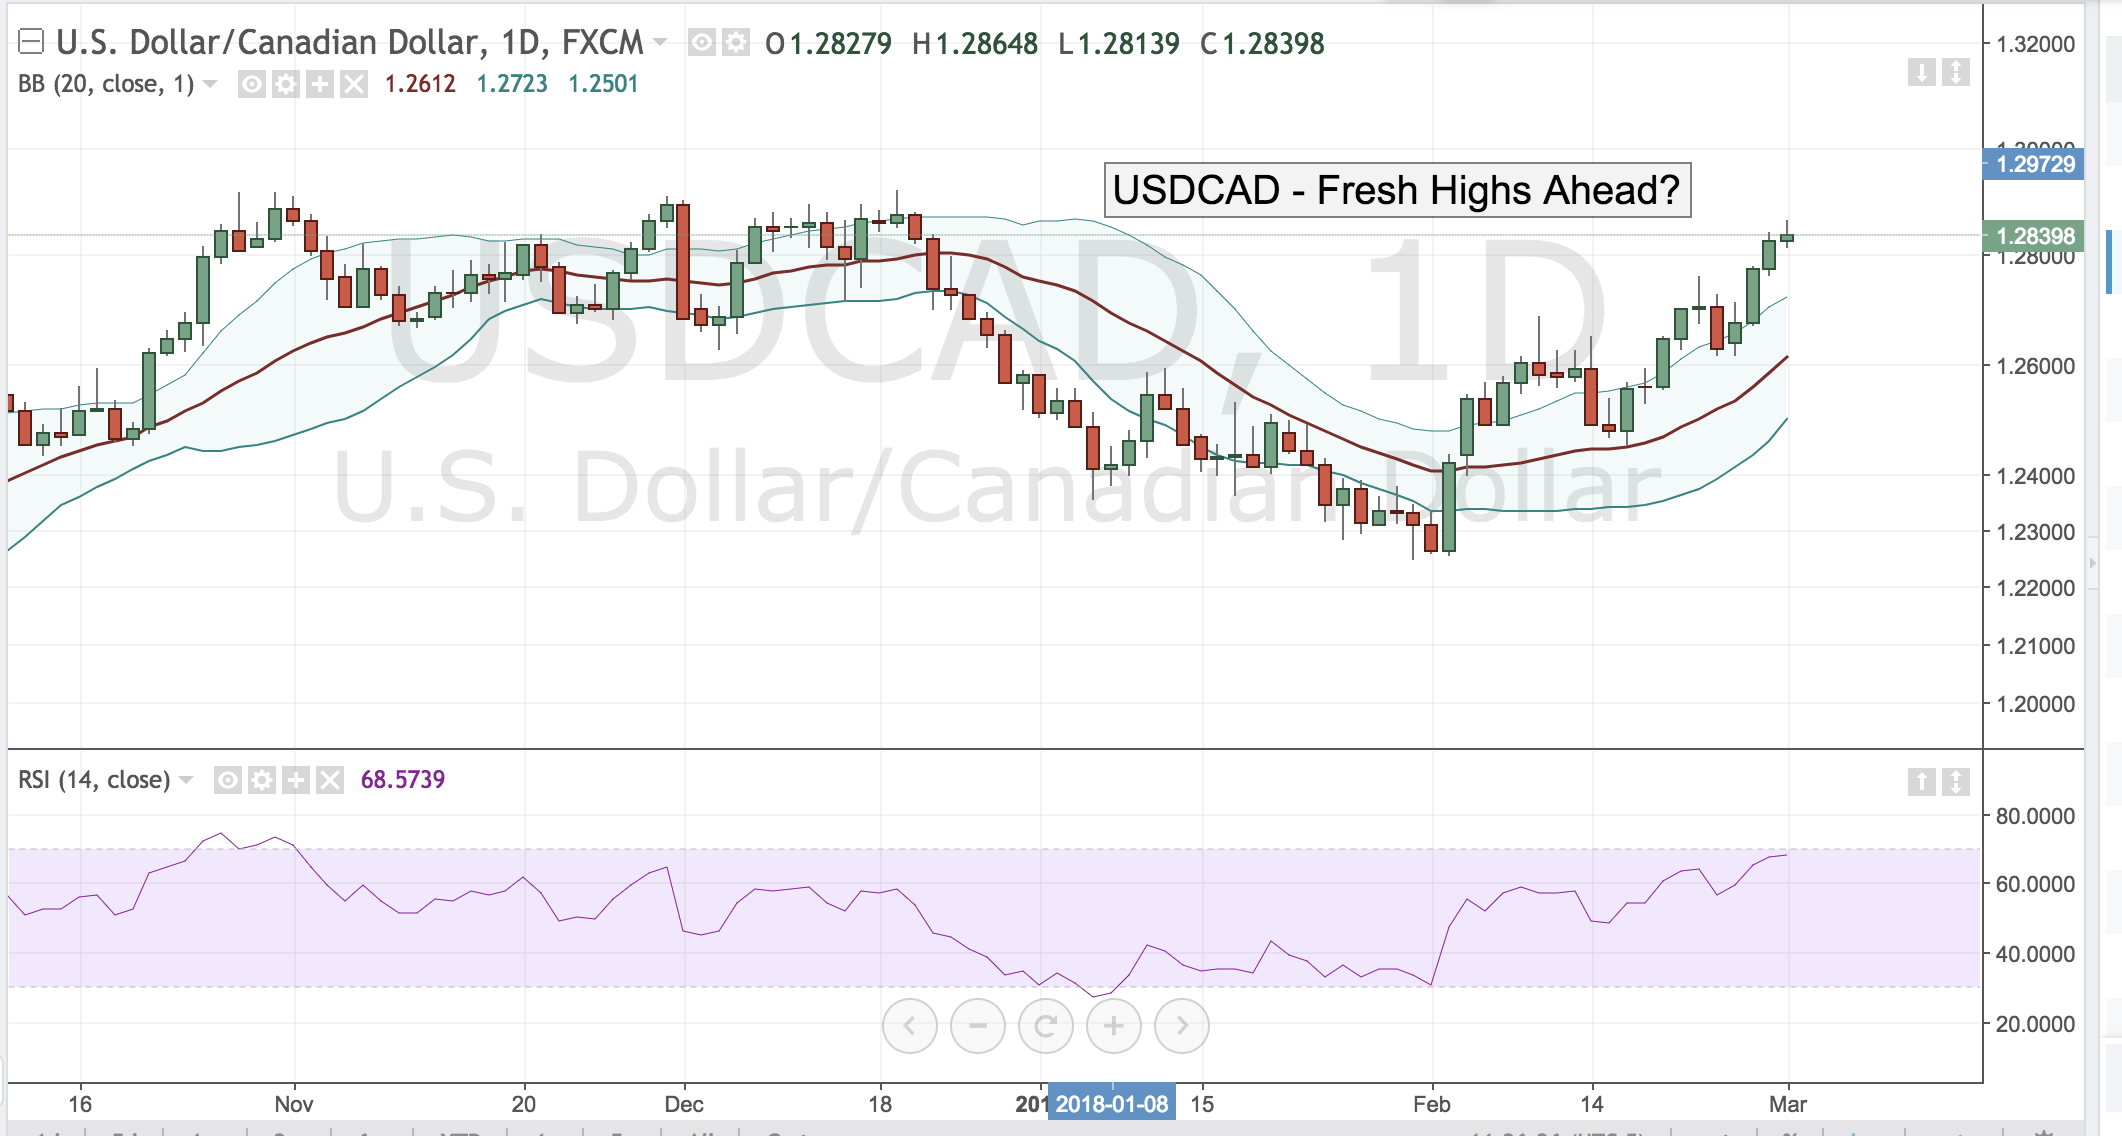 USDCAD – Fresh Highs Ahead?